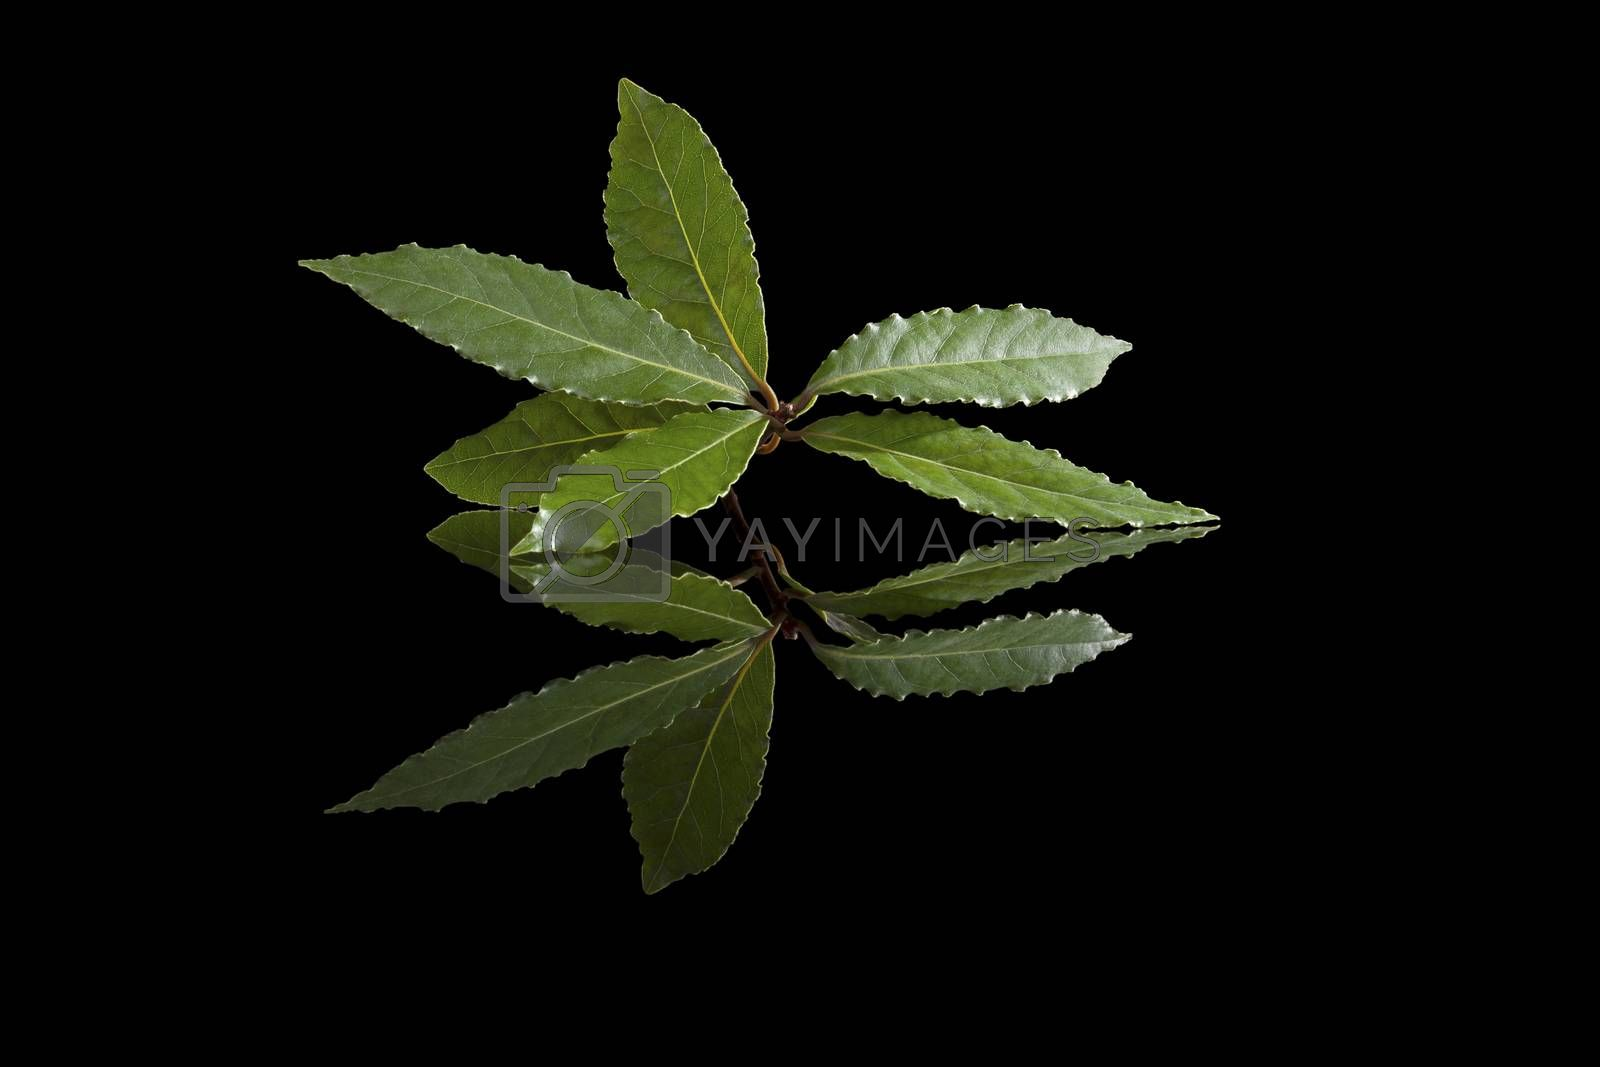 Fresh bay leaves isolated on black background. Culinary herb, cooking ingredient and medical herb.